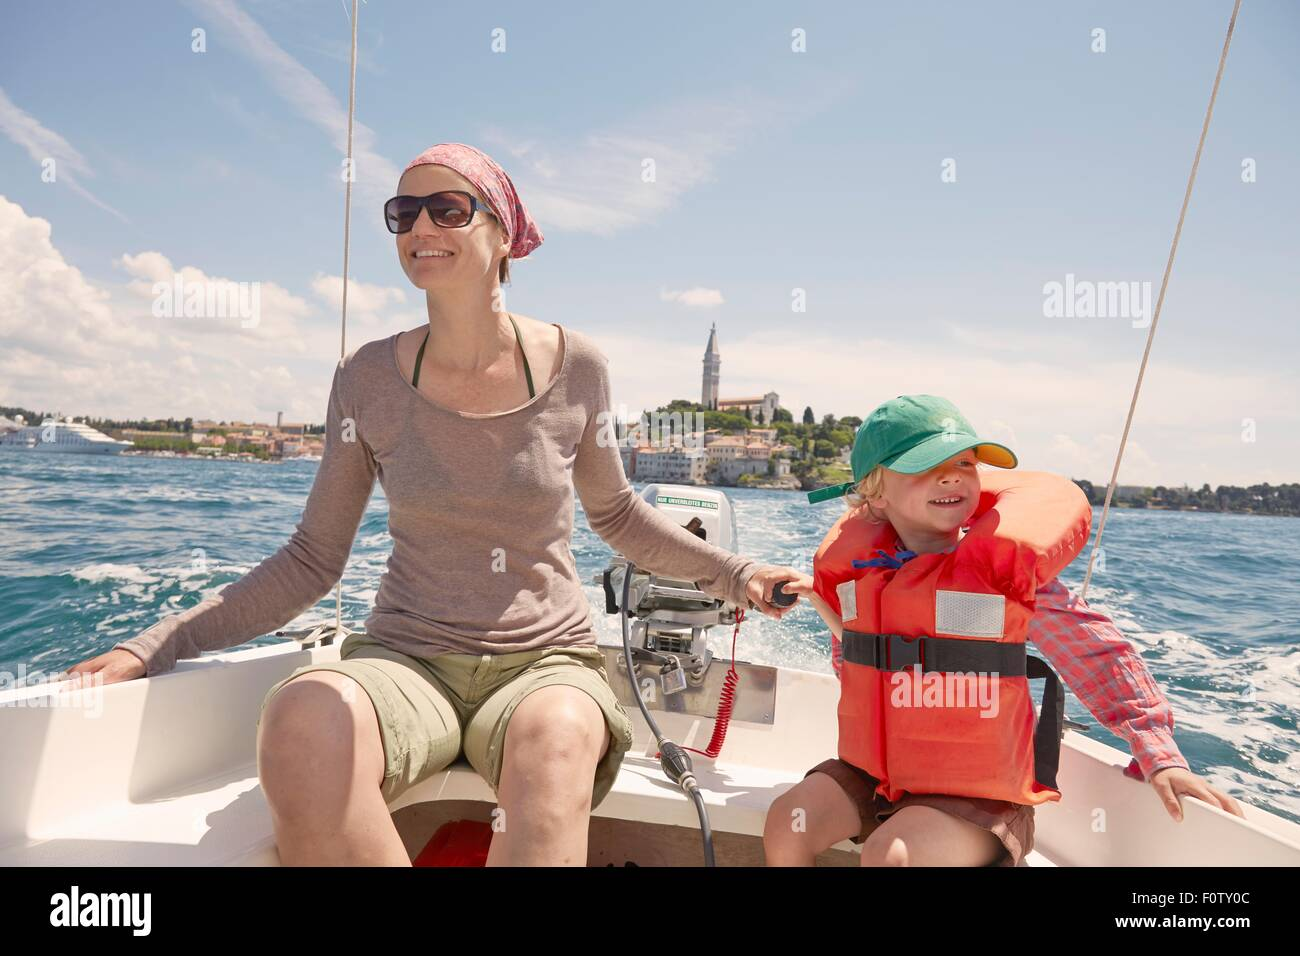 Mature woman with son steering motor boat, Rovinj, Istria Peninsula, Croatia - Stock Image